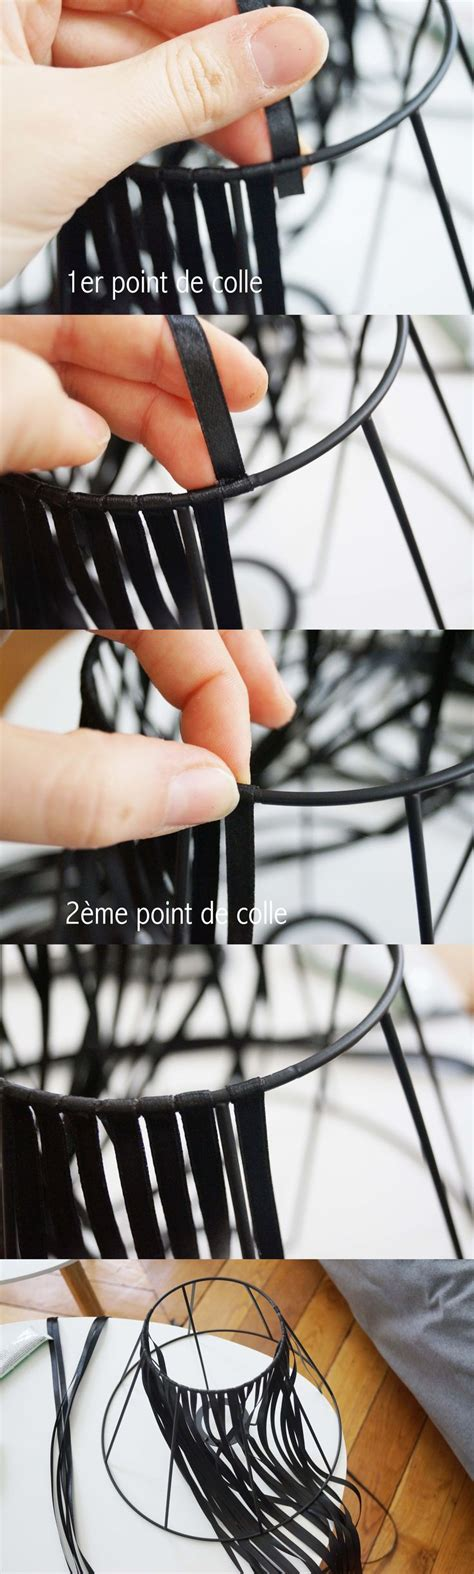 Suspension Vertigo A Faire Soi Meme by Top 25 Best Suspension Vertigo Ideas On